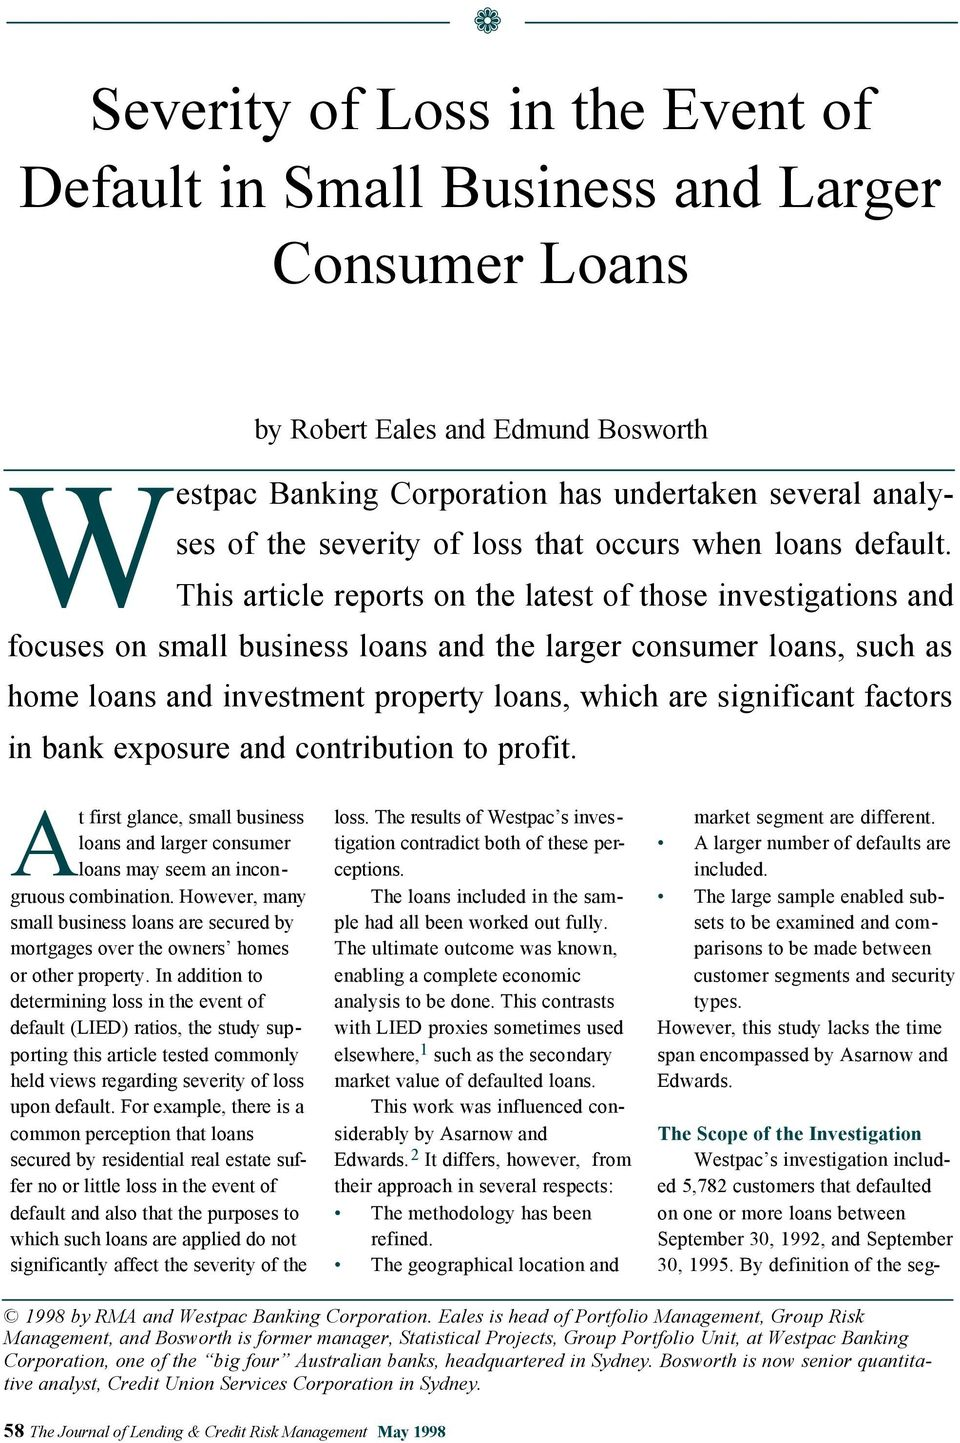 This article reports on the latest of those investigations and focuses on small business loans and the larger consumer loans, such as home loans and investment property loans, which are significant